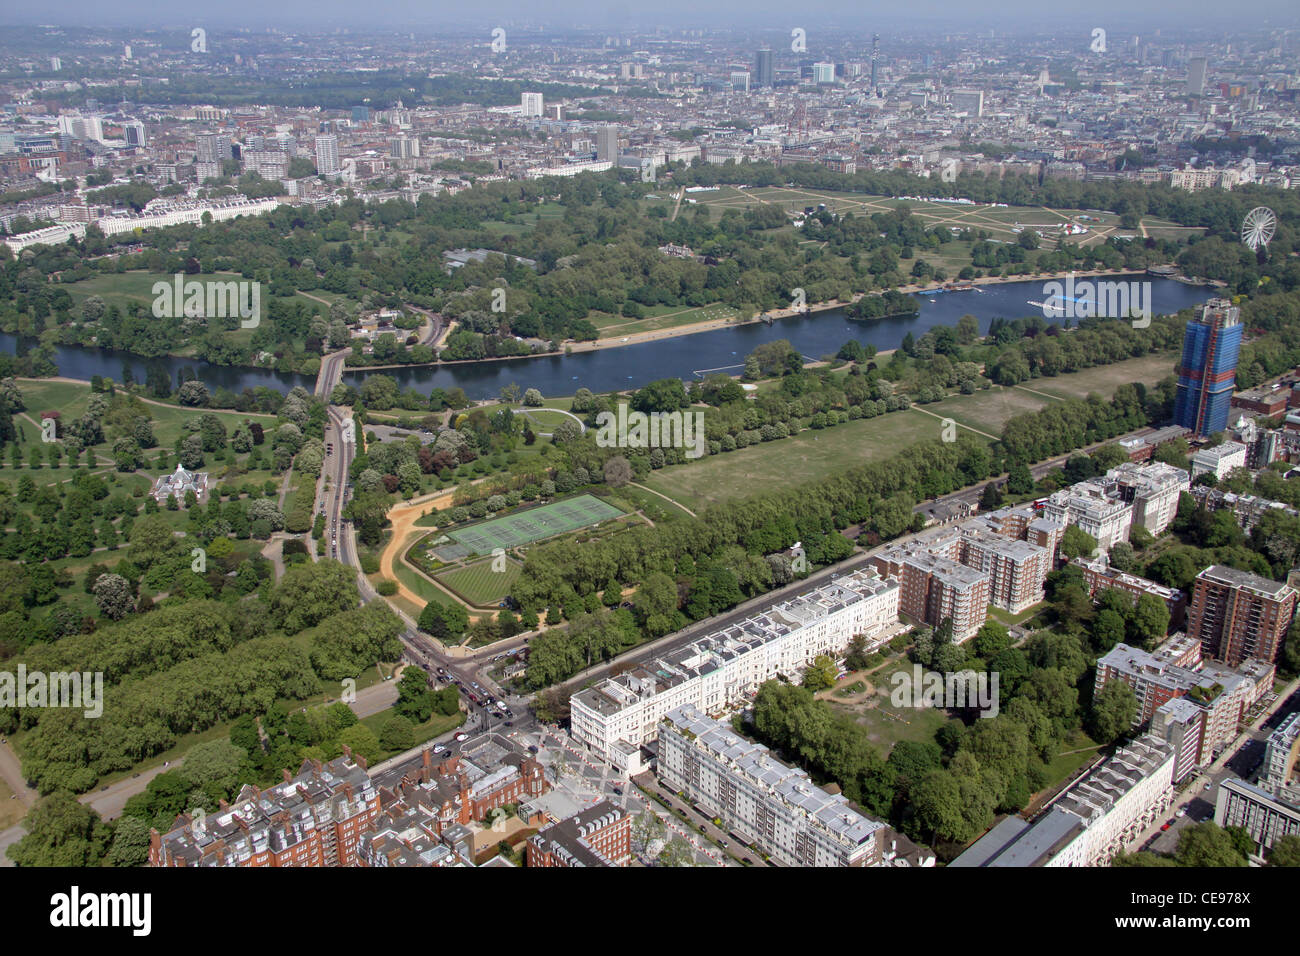 Aerial image of Hyde Park, London - Stock Image